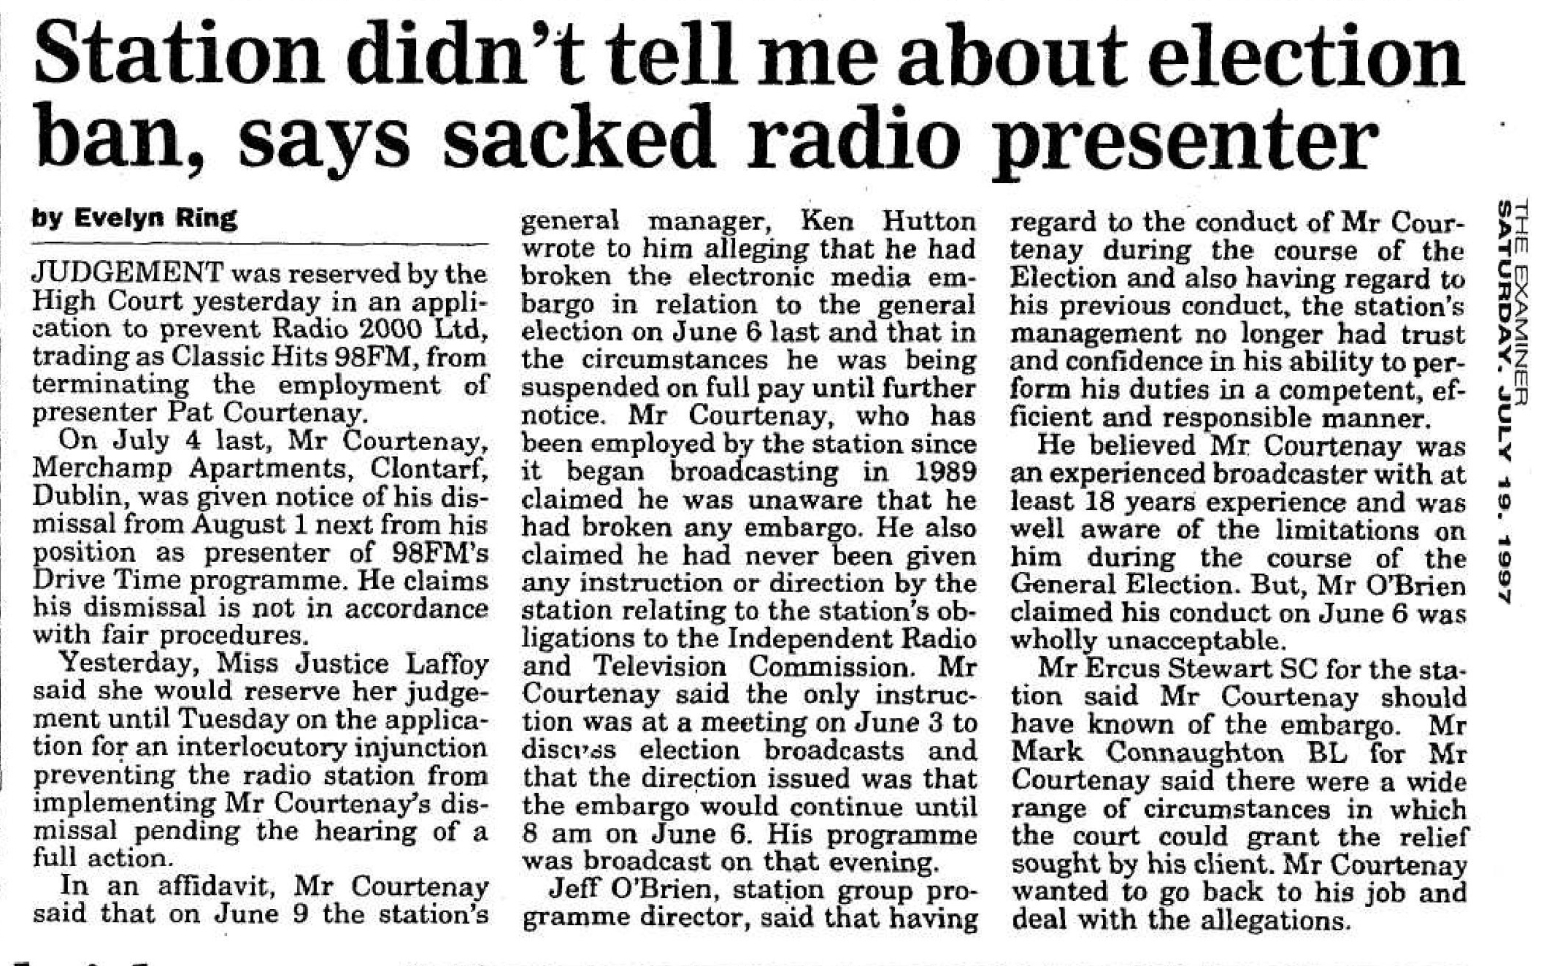 Timeline: Station didn't tell me about election ban, says sacked radio presenter was a headline in the Irish Examiner dated July 19th 1987